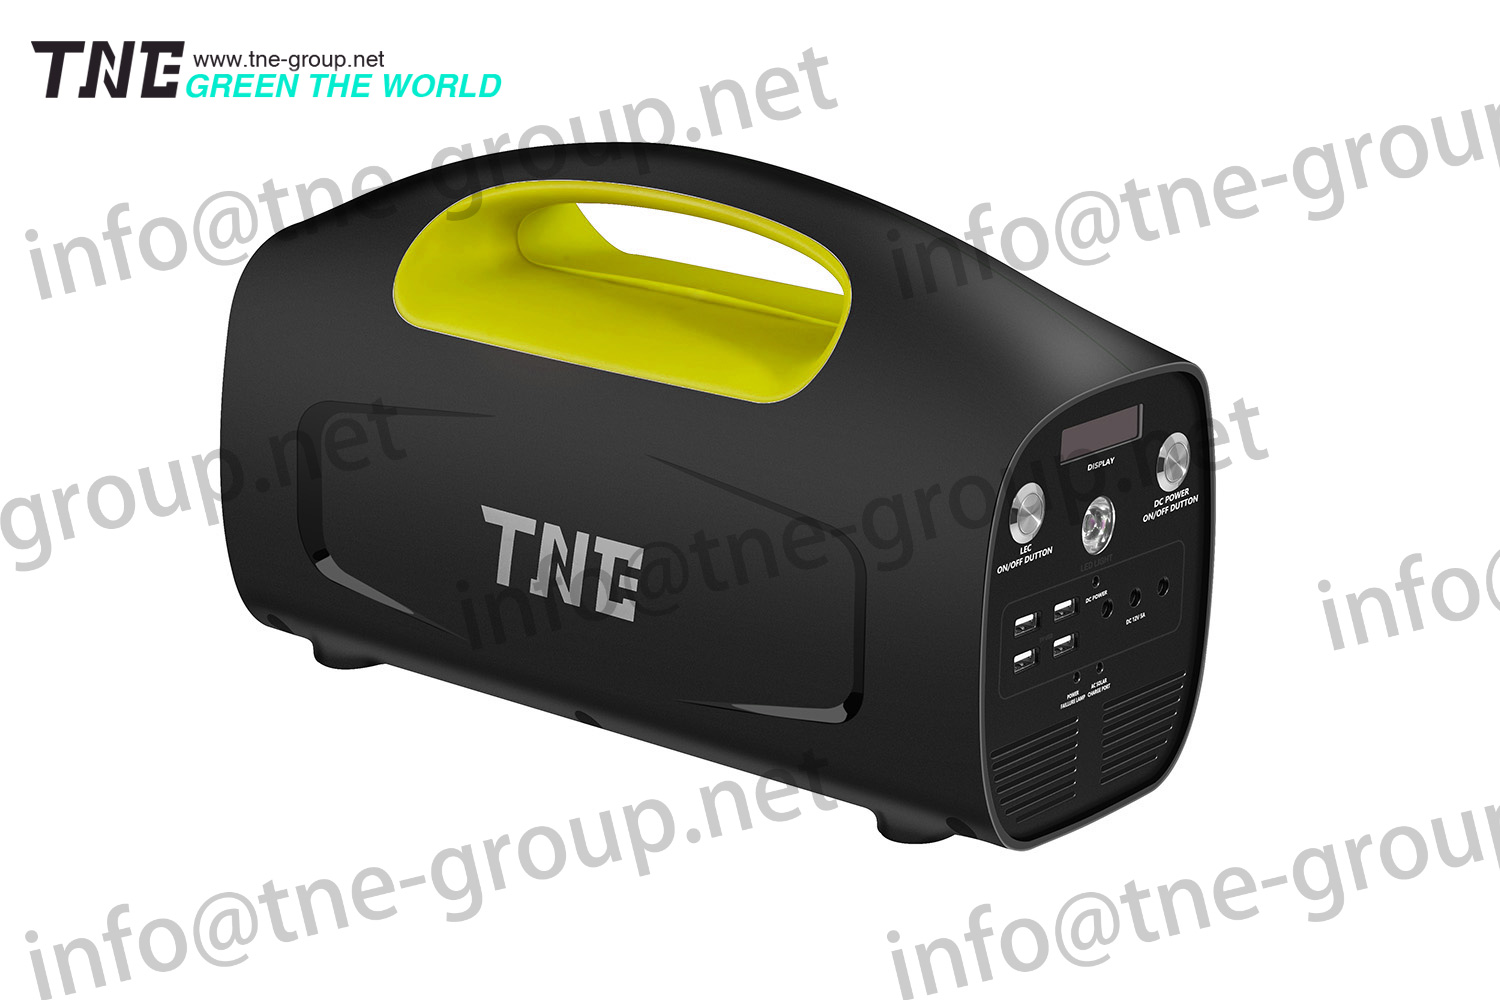 TNE Offline 500VA Power Portable UPS with dry batteries for company